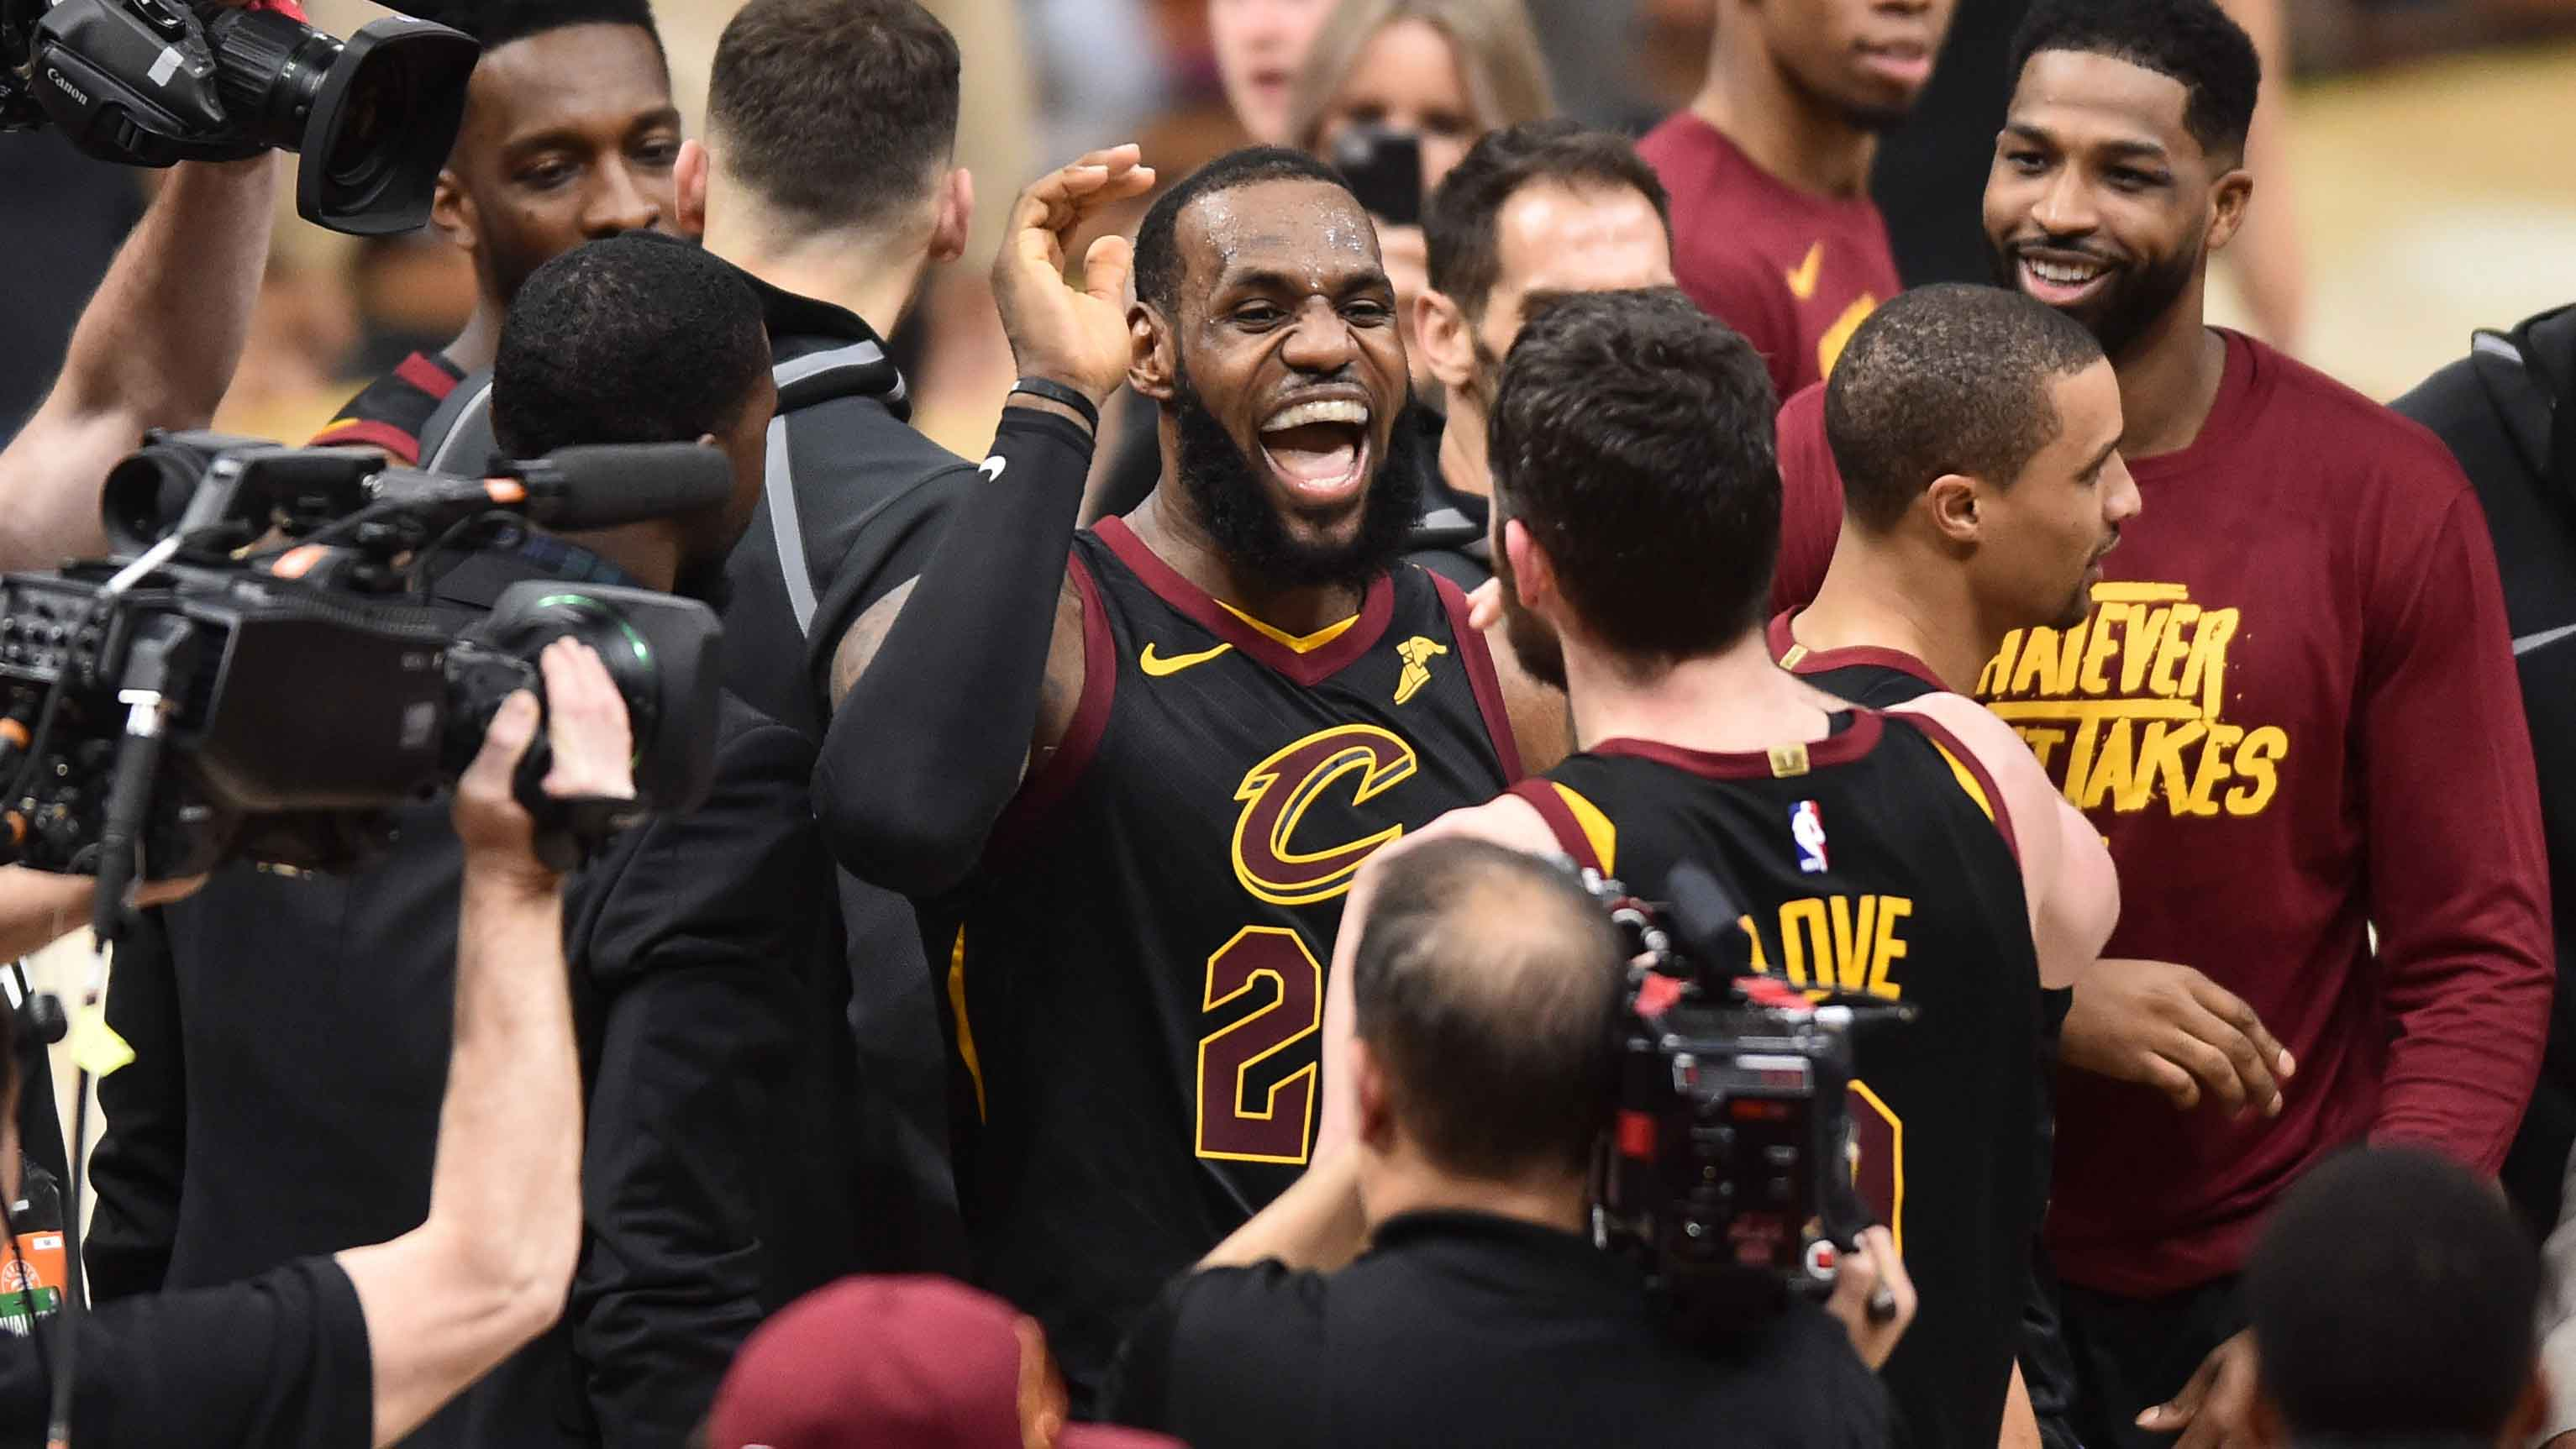 064b76ef9f LeBron's Buzzer-Beater Puts Raptors on the Brink | Cleveland Cavaliers